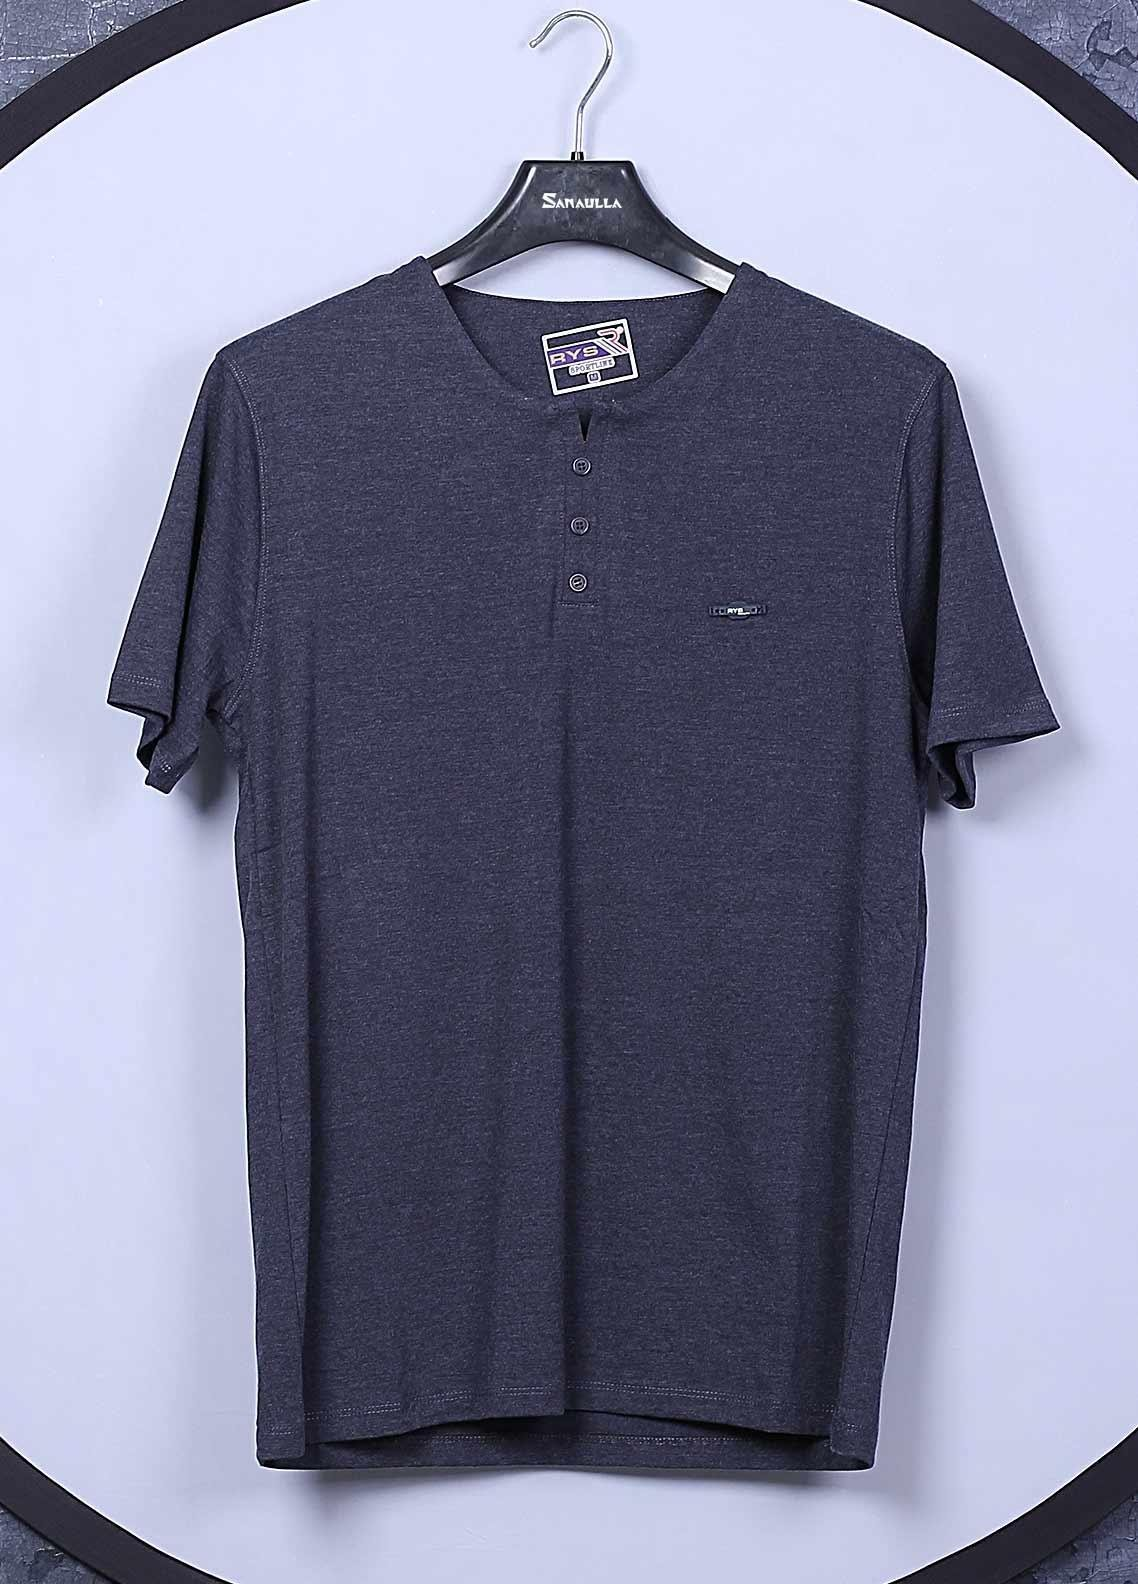 Sanaulla Exclusive Range Cotton Casual T-Shirts for Mens -  5622 Grey